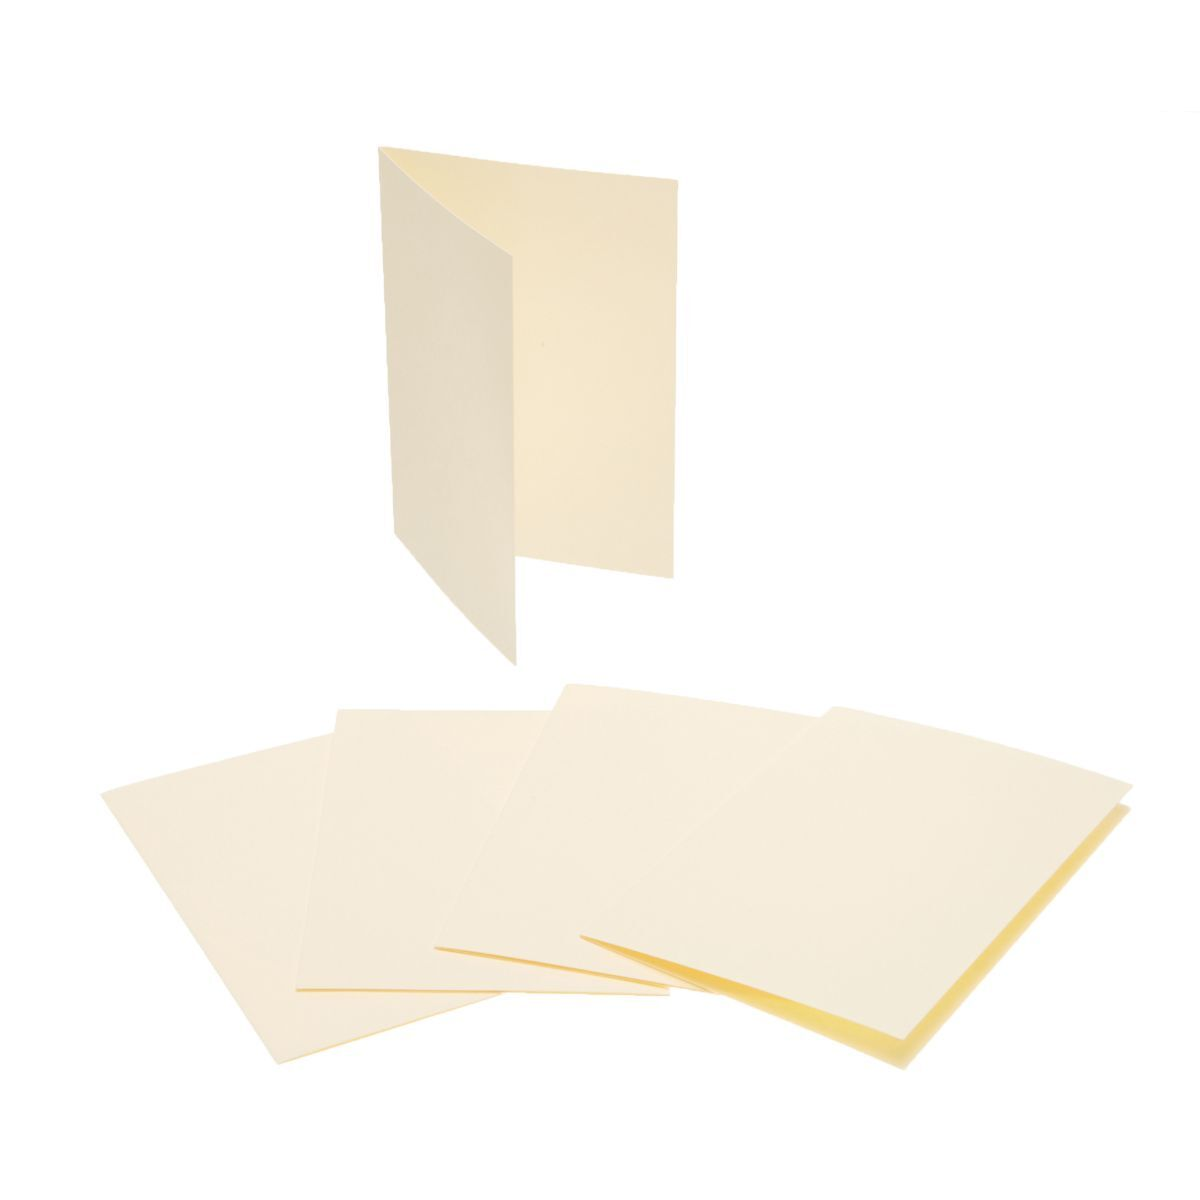 Pollen Folded Cards 155x110mm